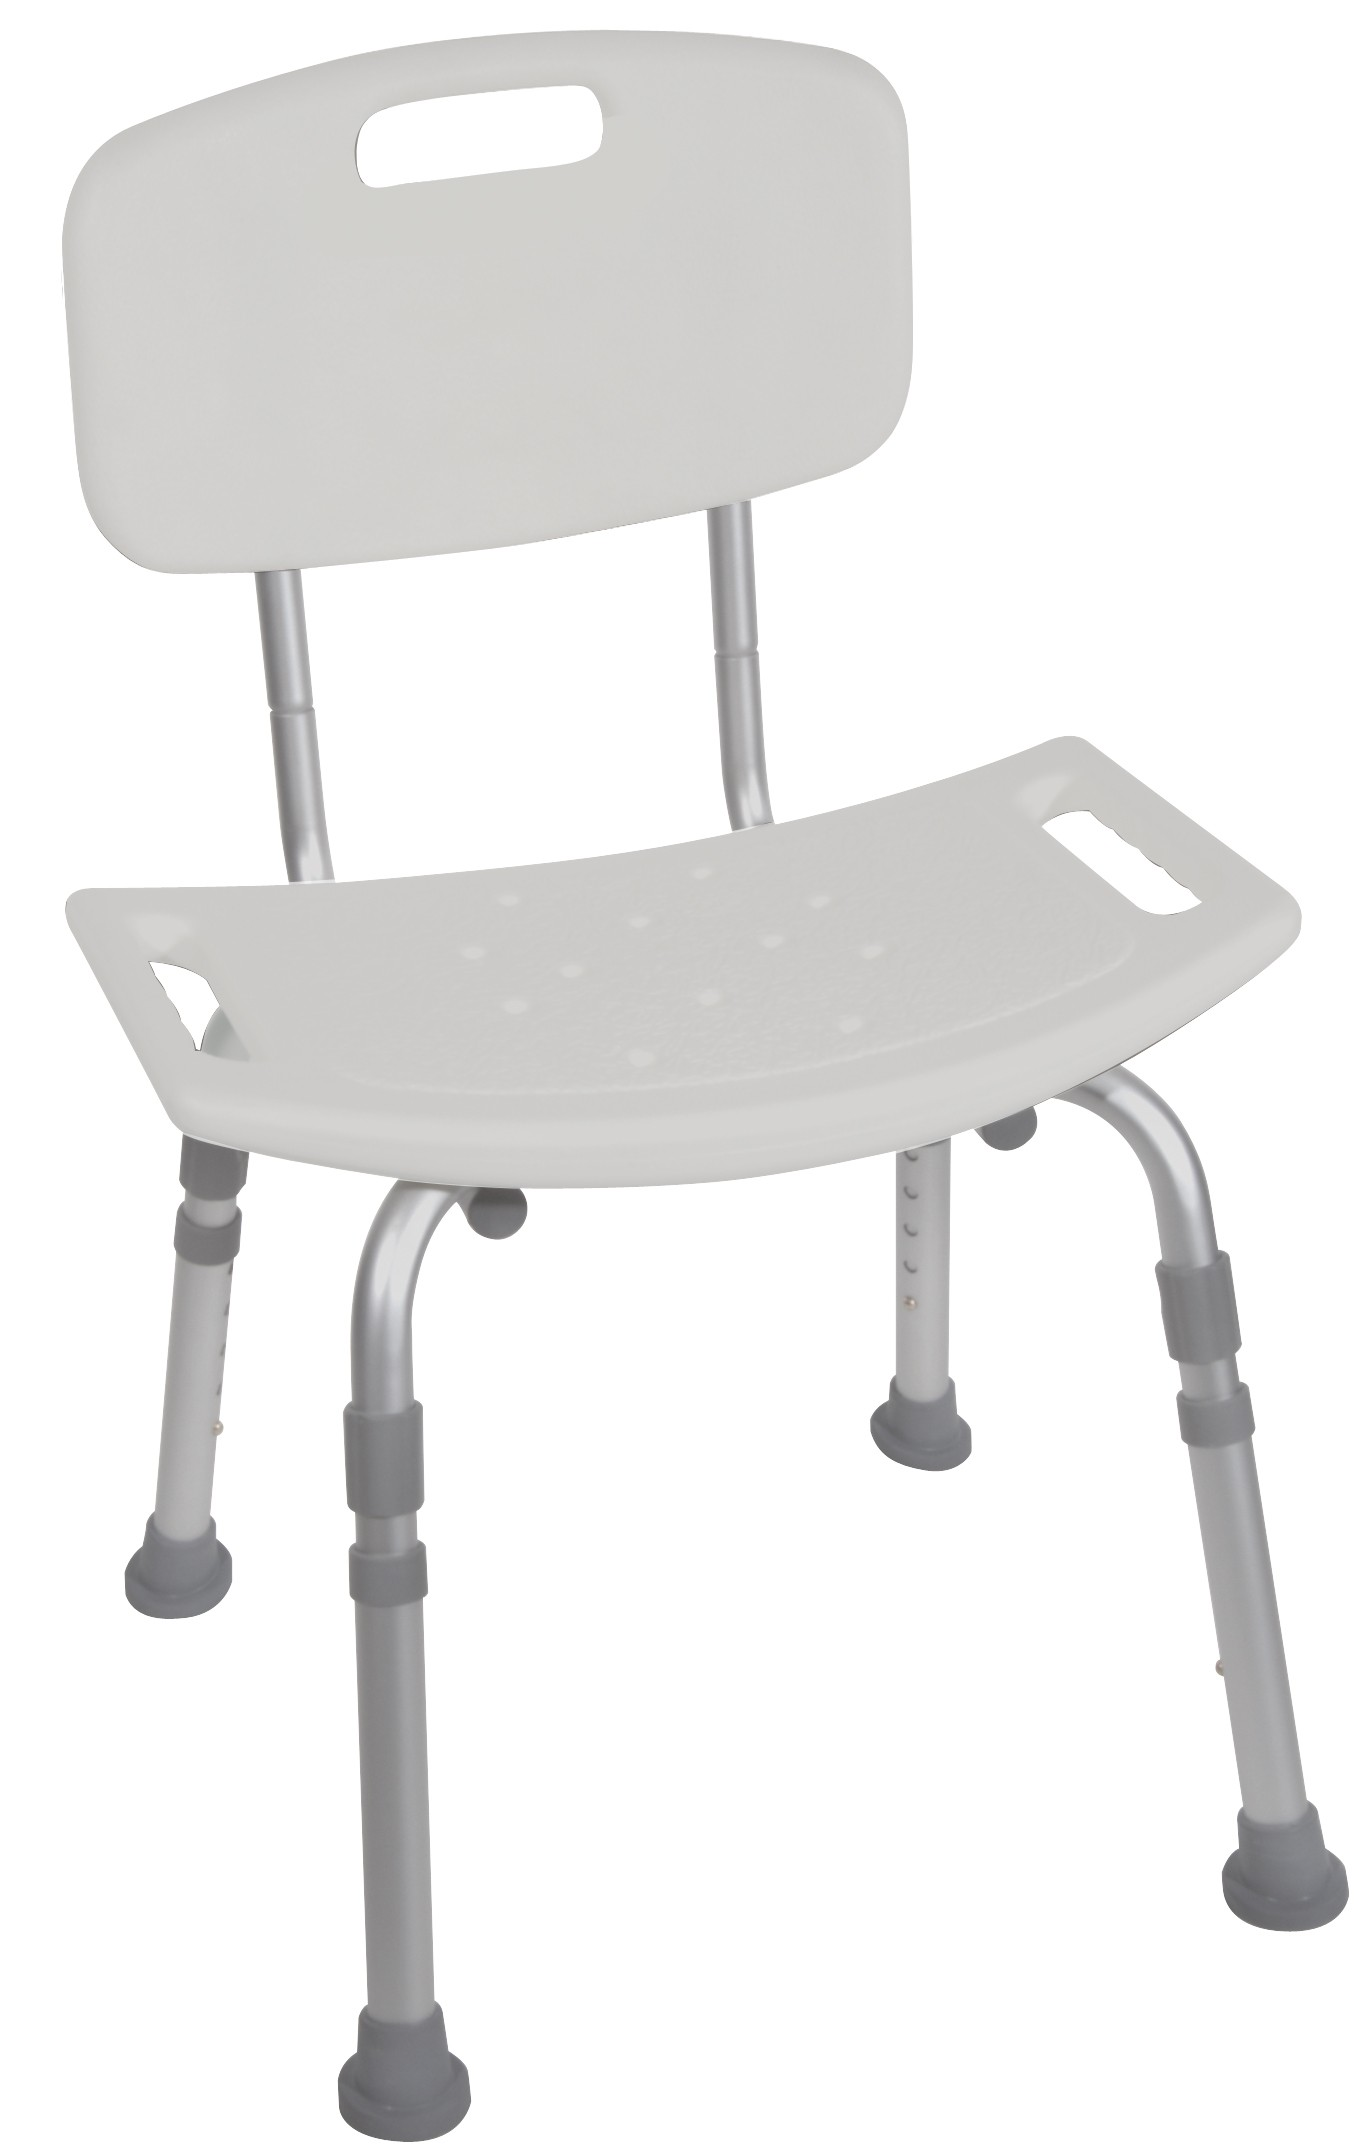 Drive Medical Deluxe Aluminum Shower Chair. Bathroom Aids   Shower Chairs   Transfer Benches   Shower Chairs